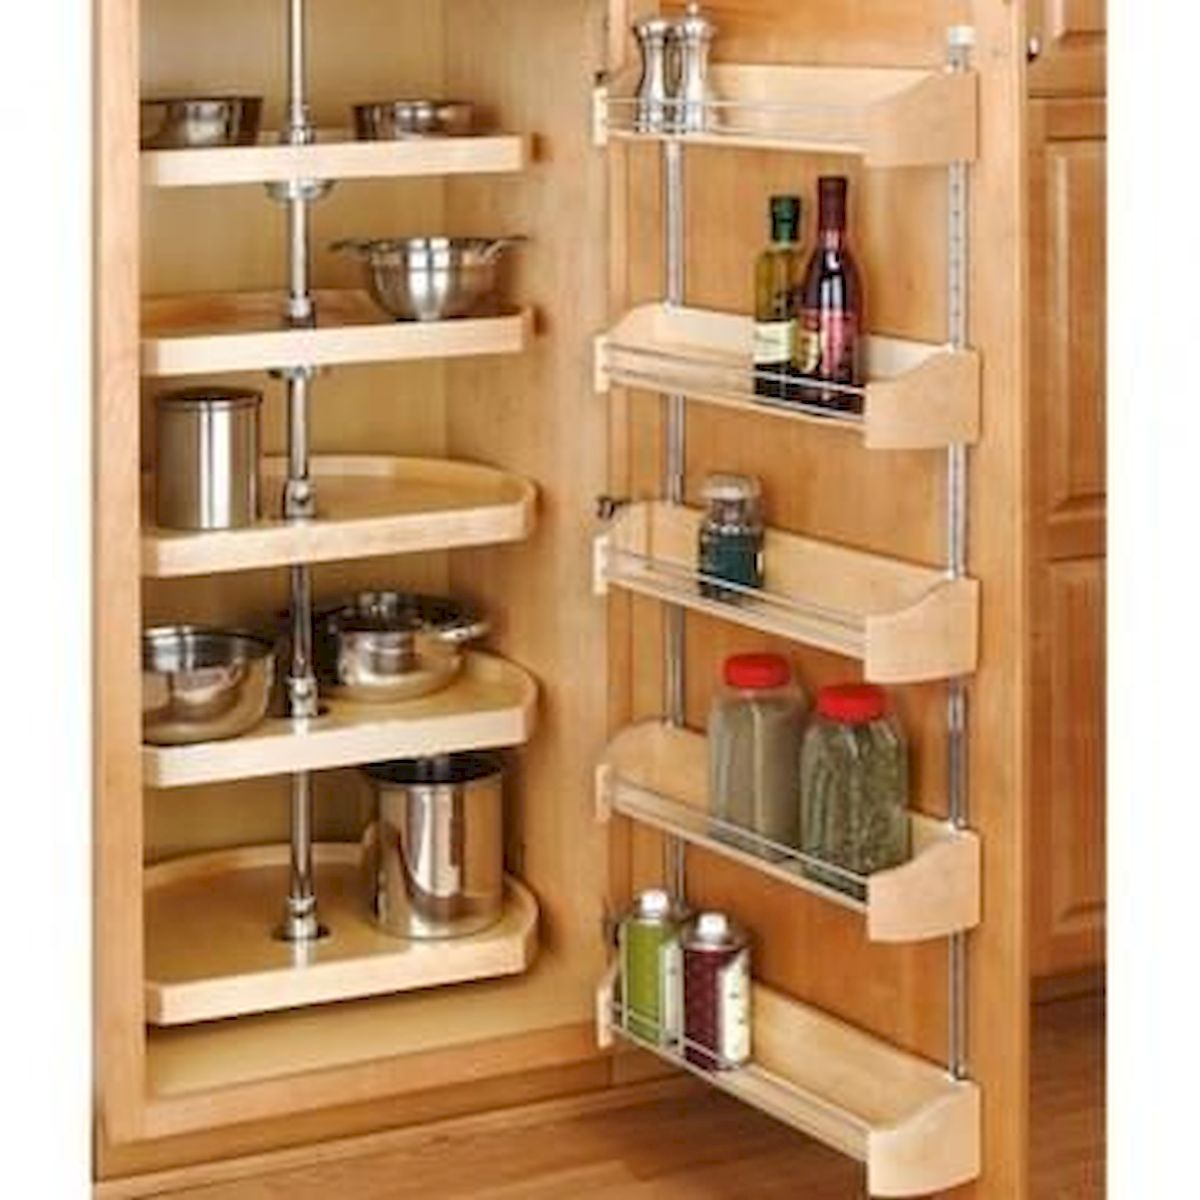 50 Amazing DIY Pallet Kitchen Cabinets Design Ideas (2)